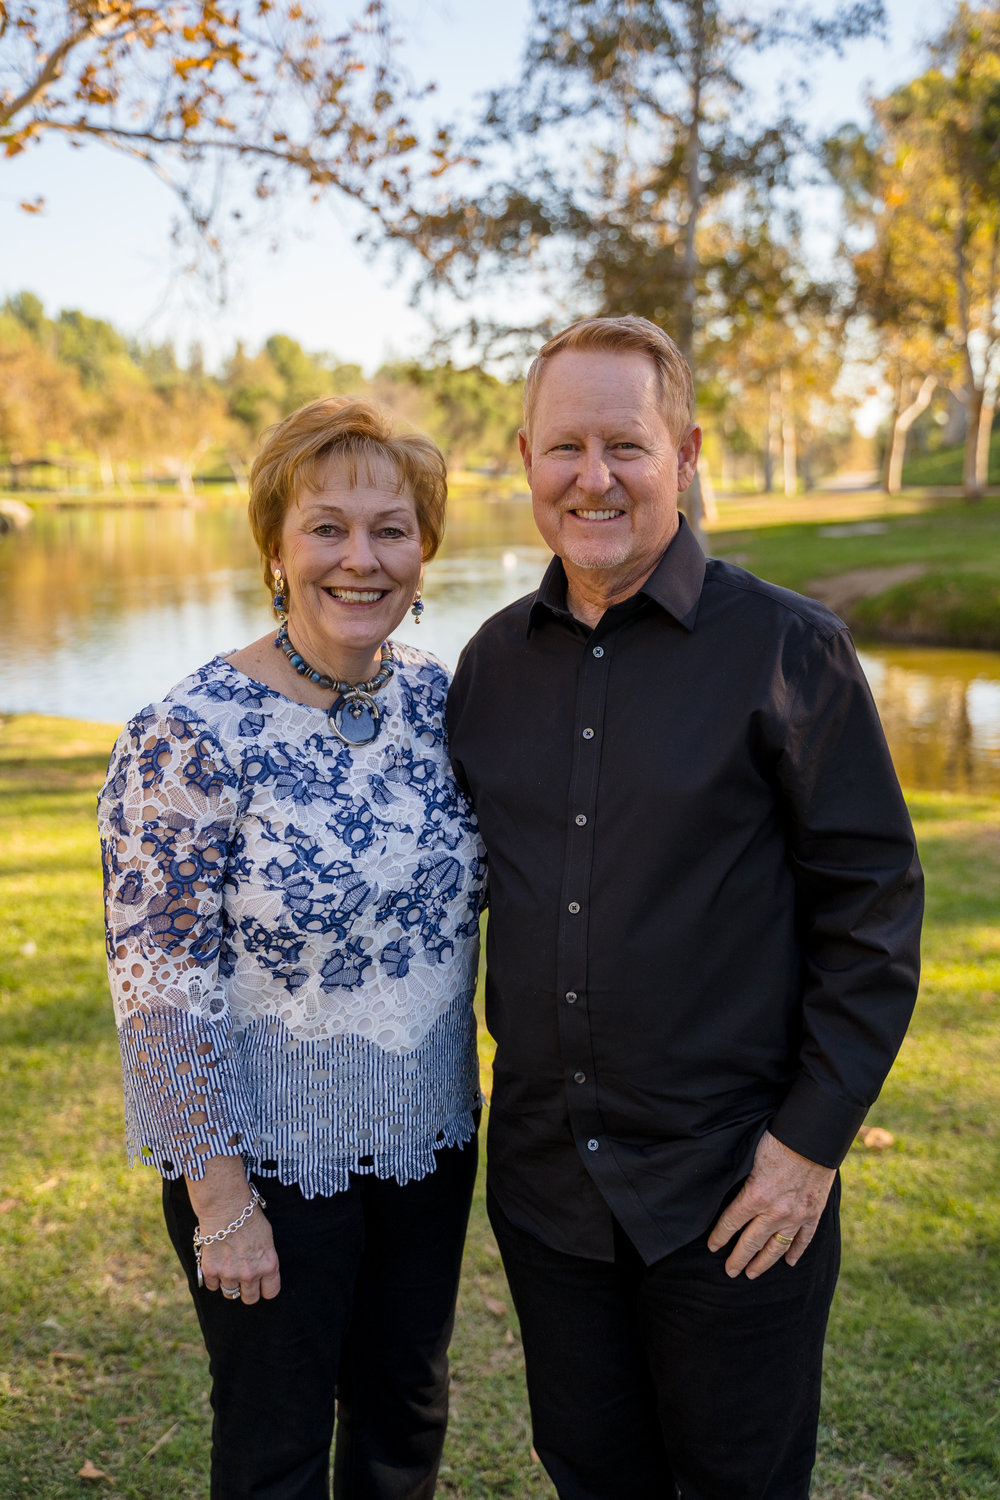 PASTORS BOB AND SHERRY - Bob and Sherry are very proud parents of two sons, John and Joshua, and one daughter, Shannon. They have been married over 40 years and live in San Dimas, California. Bob and Sherry met during their college years at Azusa Pacific University where Bob played baseball and majored in Biblical Literature, while Sherry accumulated a double major in Psychology and Religion. They have traveled internationally speaking to large and small groups about marriage, family life, parenting and educational challenges.Bob and Sherry are appreciated for their honest yet humorous approach to teaching. You will laugh and learn about yourself and your marriage from their teaching.